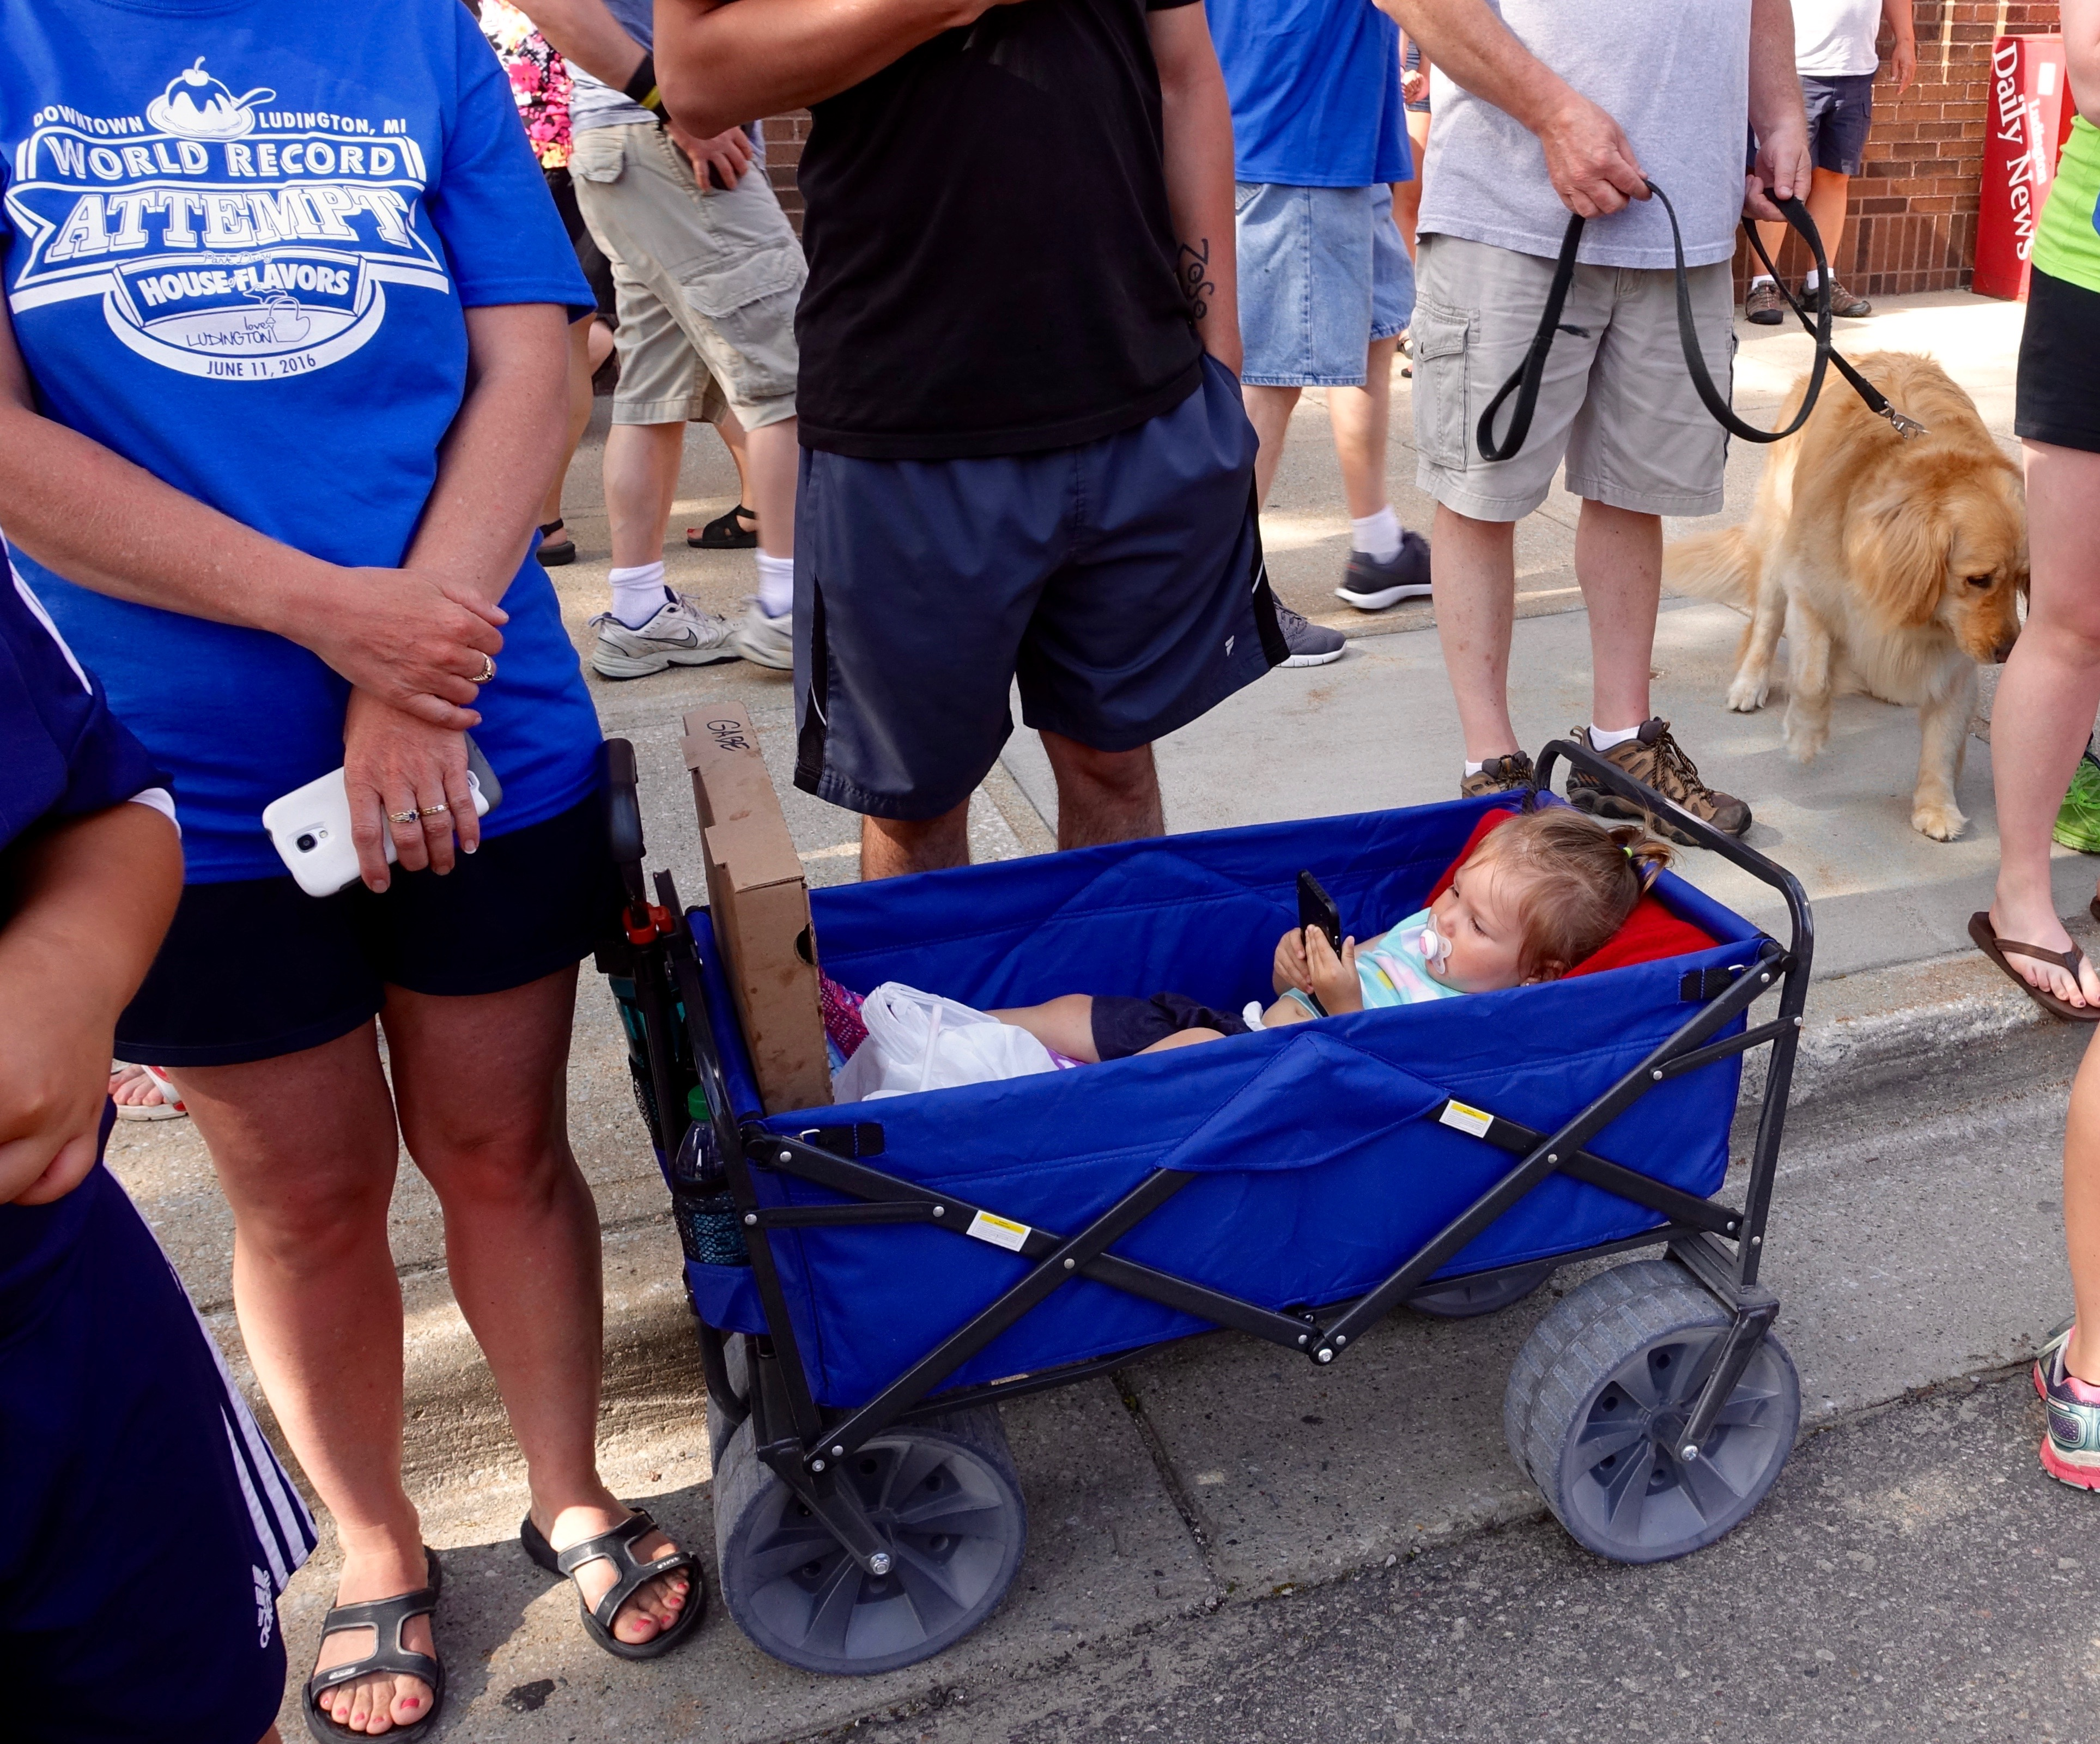 Baby playing with cell phone at Ludington's World's Largest Sundae Attempt